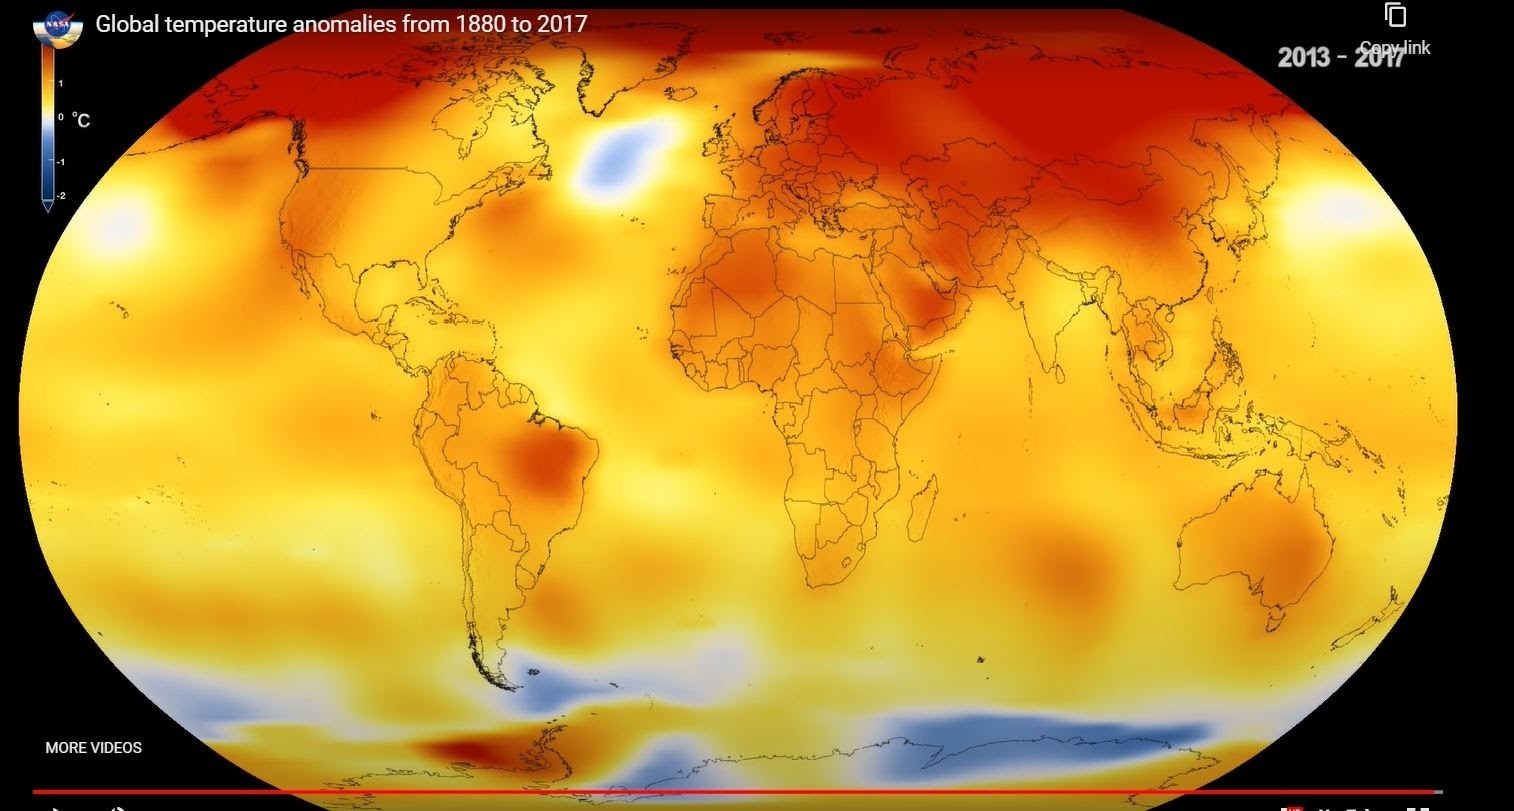 a map of the world showing global temperature anomalies in 2013-2017